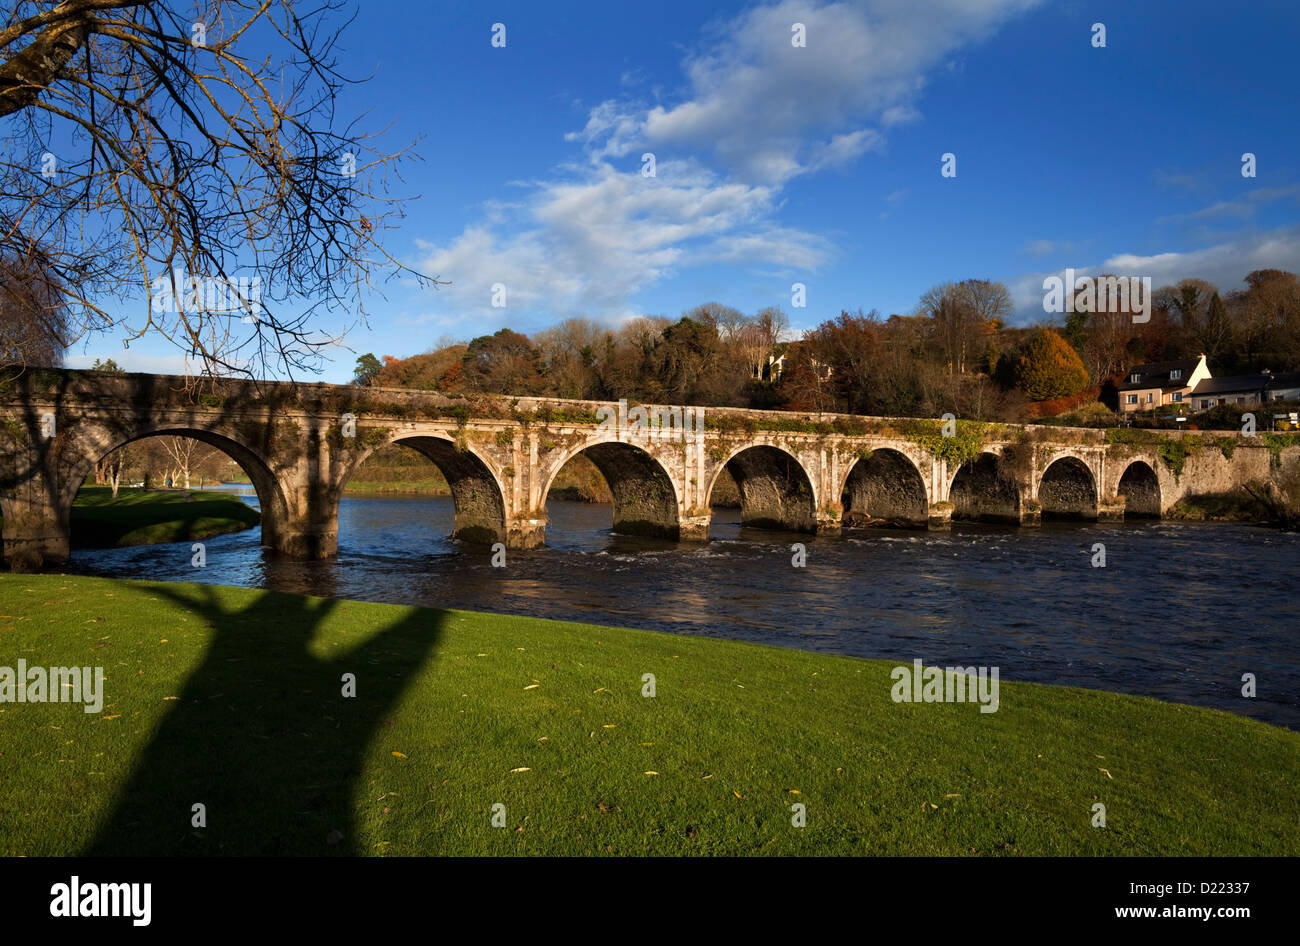 The Old Bridge over the River Nore, Inistioge, County Kilkenny, Ireland - Stock Image